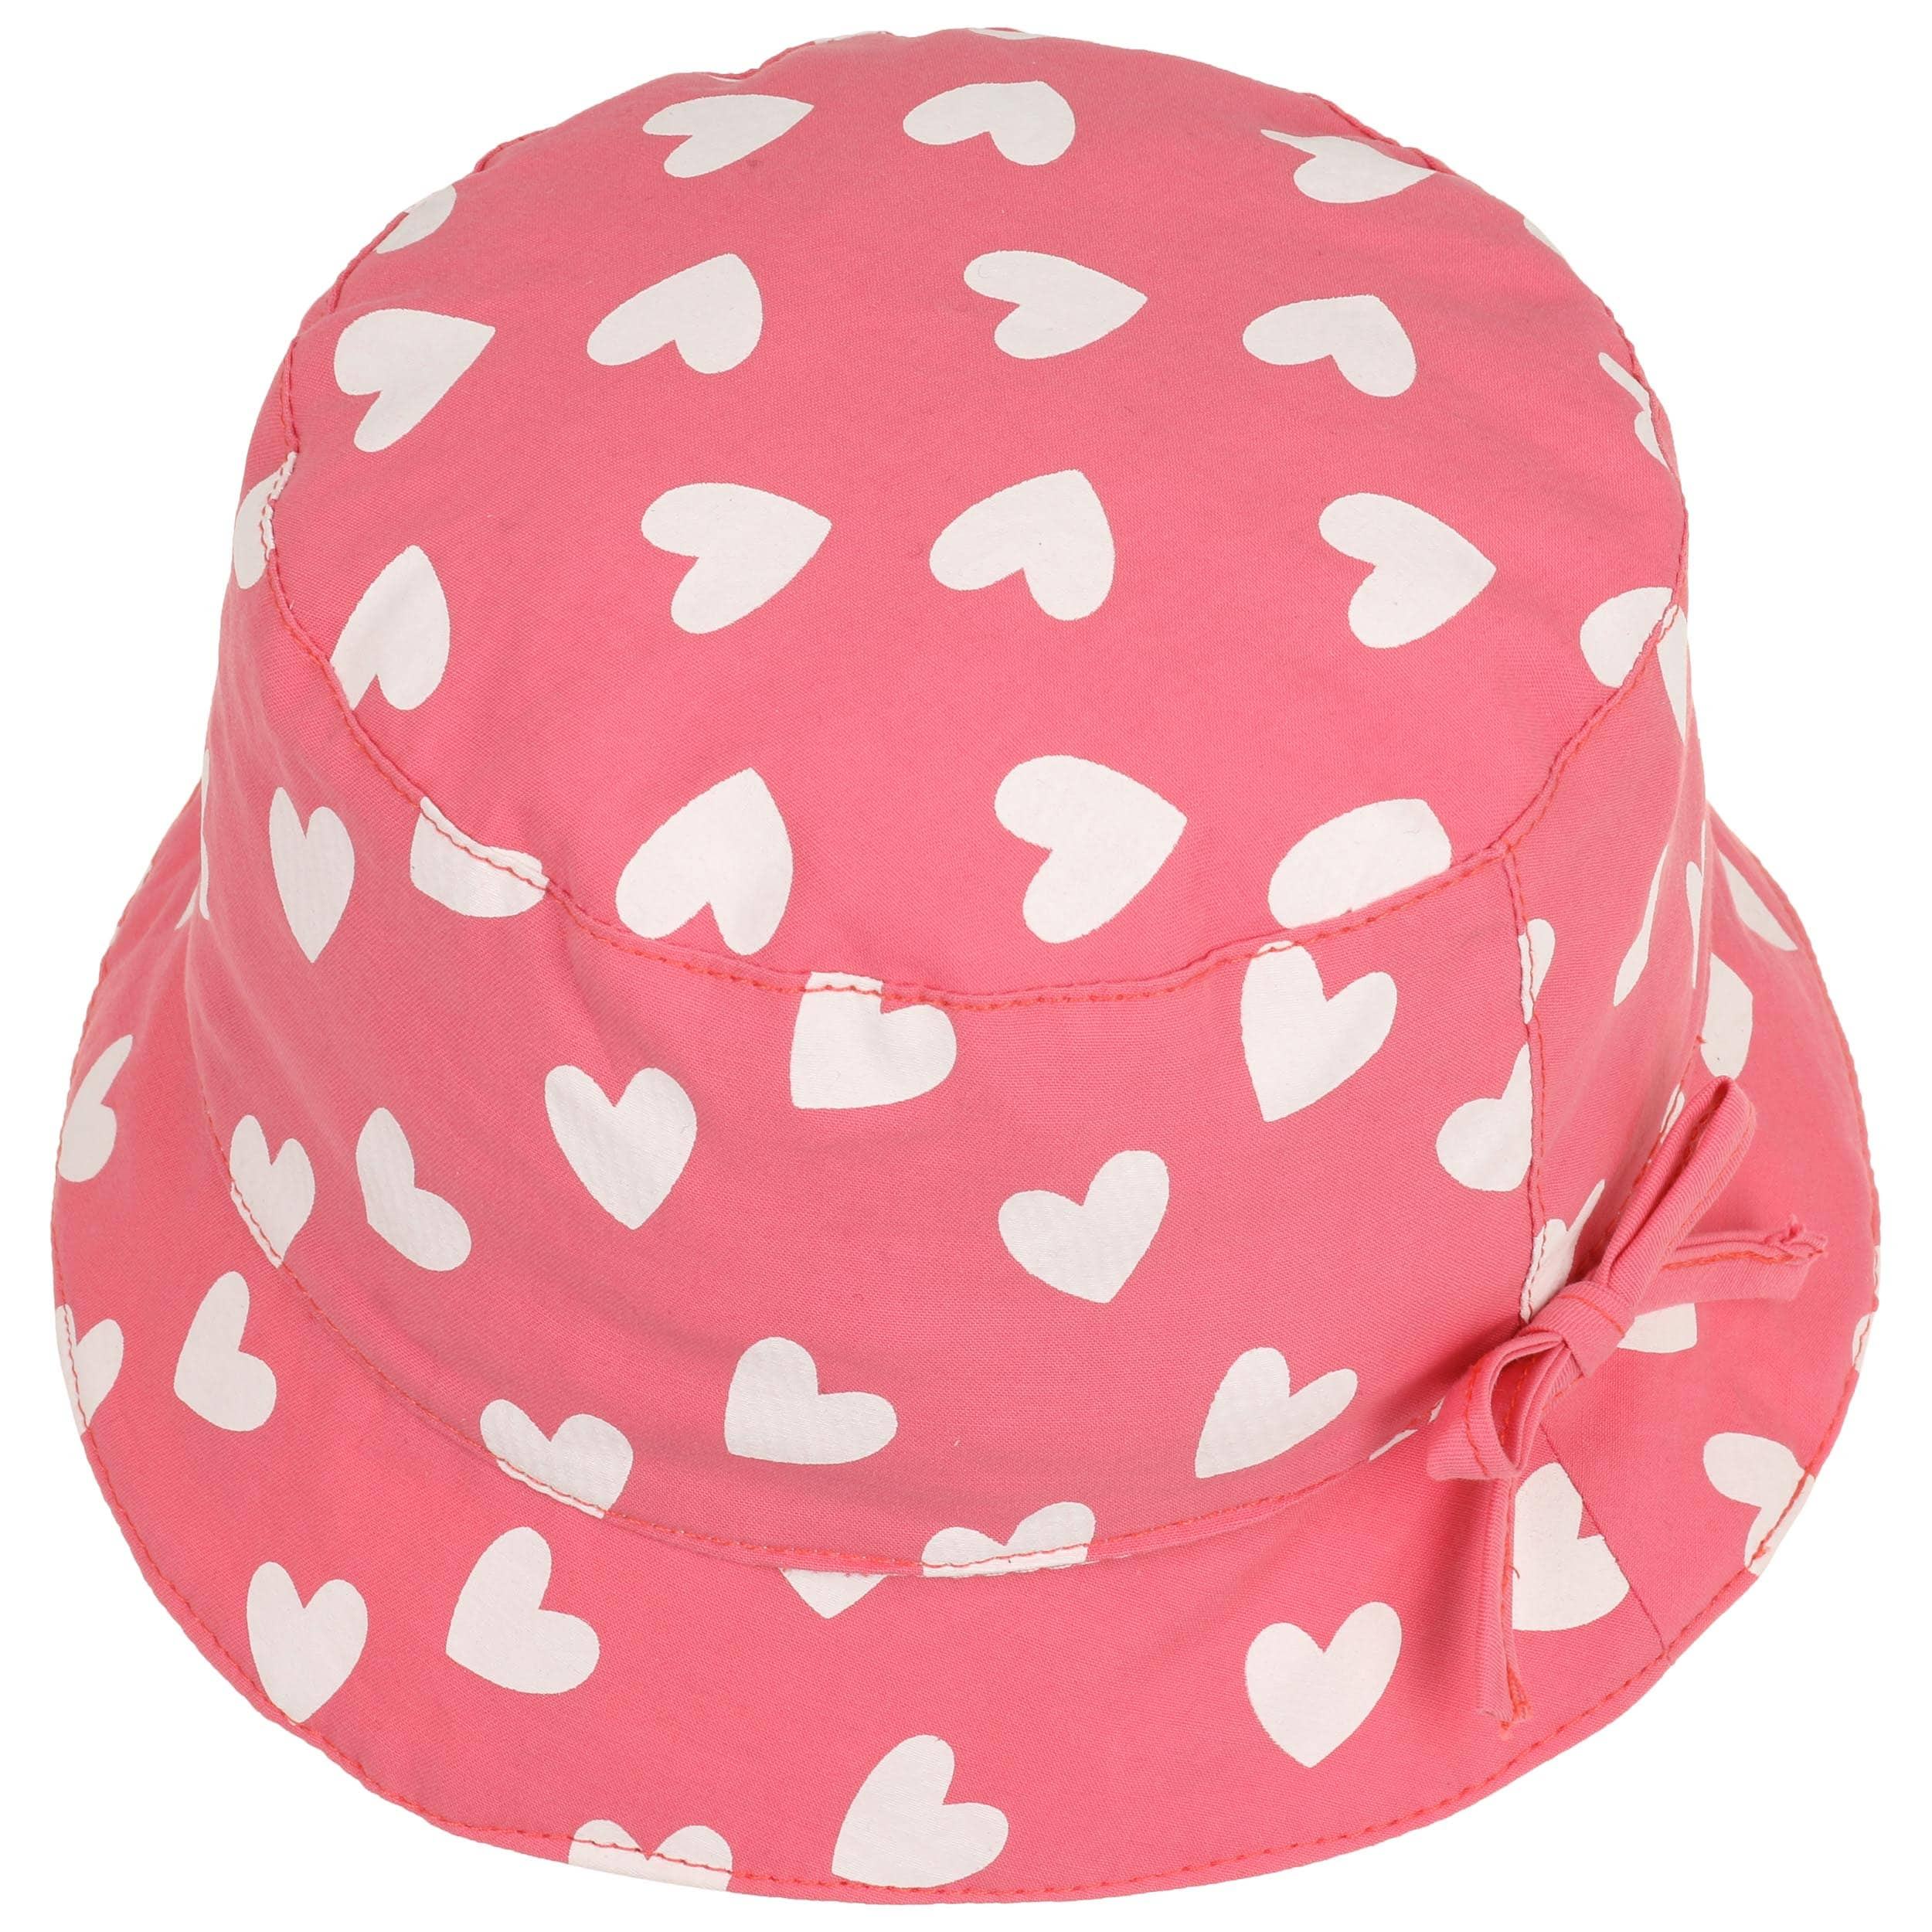 Cappello da Bambino Girly Hearts by maximo - rosa 1 ... 0298c4213962